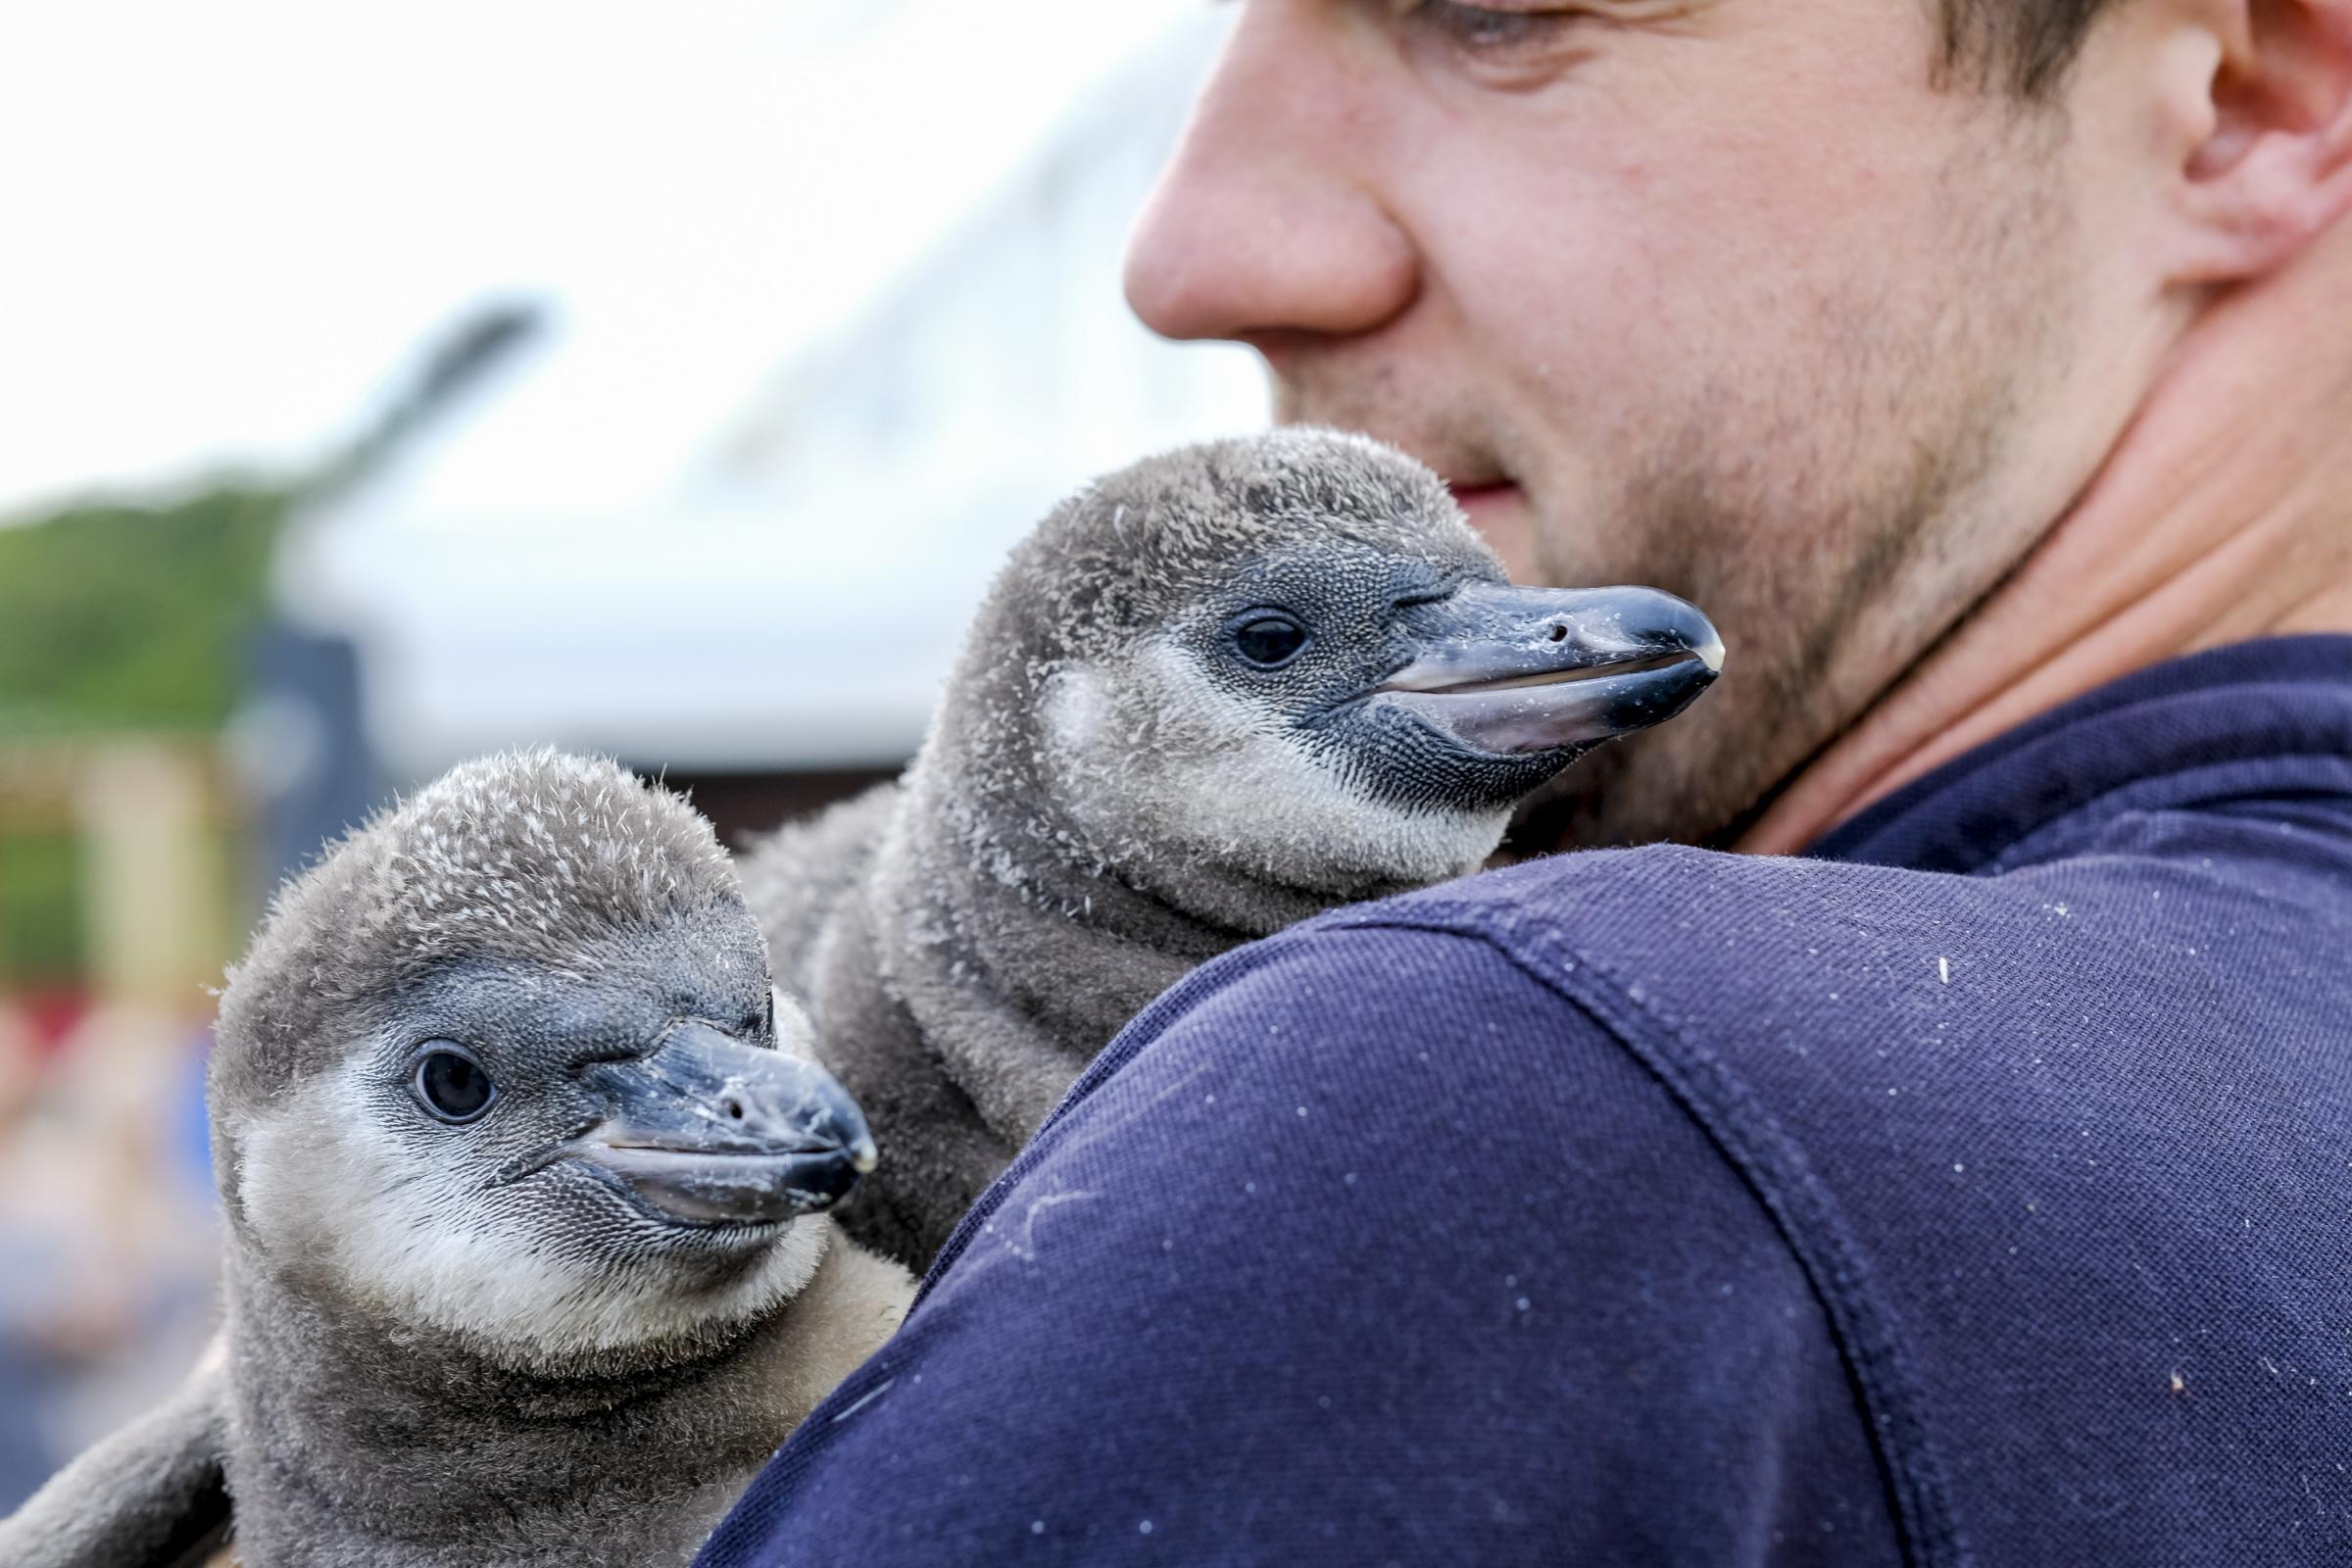 PEEKABOO: Todd German, Senior aquarist at Scarborough Sea Life Centre with the new penguin arrivals Hazel and Barnacles.